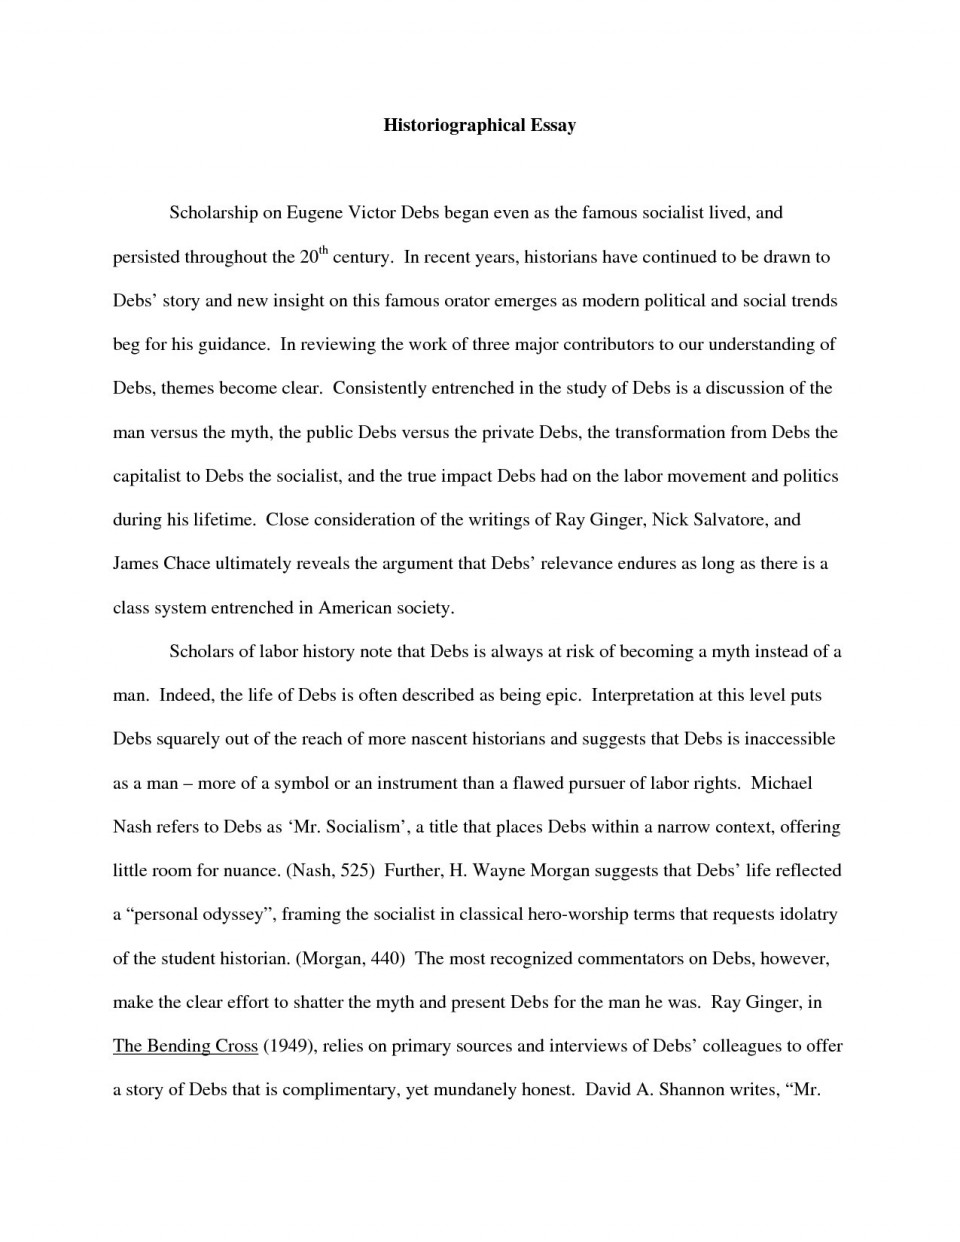 001 Epeiooslsh Essay Example Remarkable Historiographical Sample Historiography 960